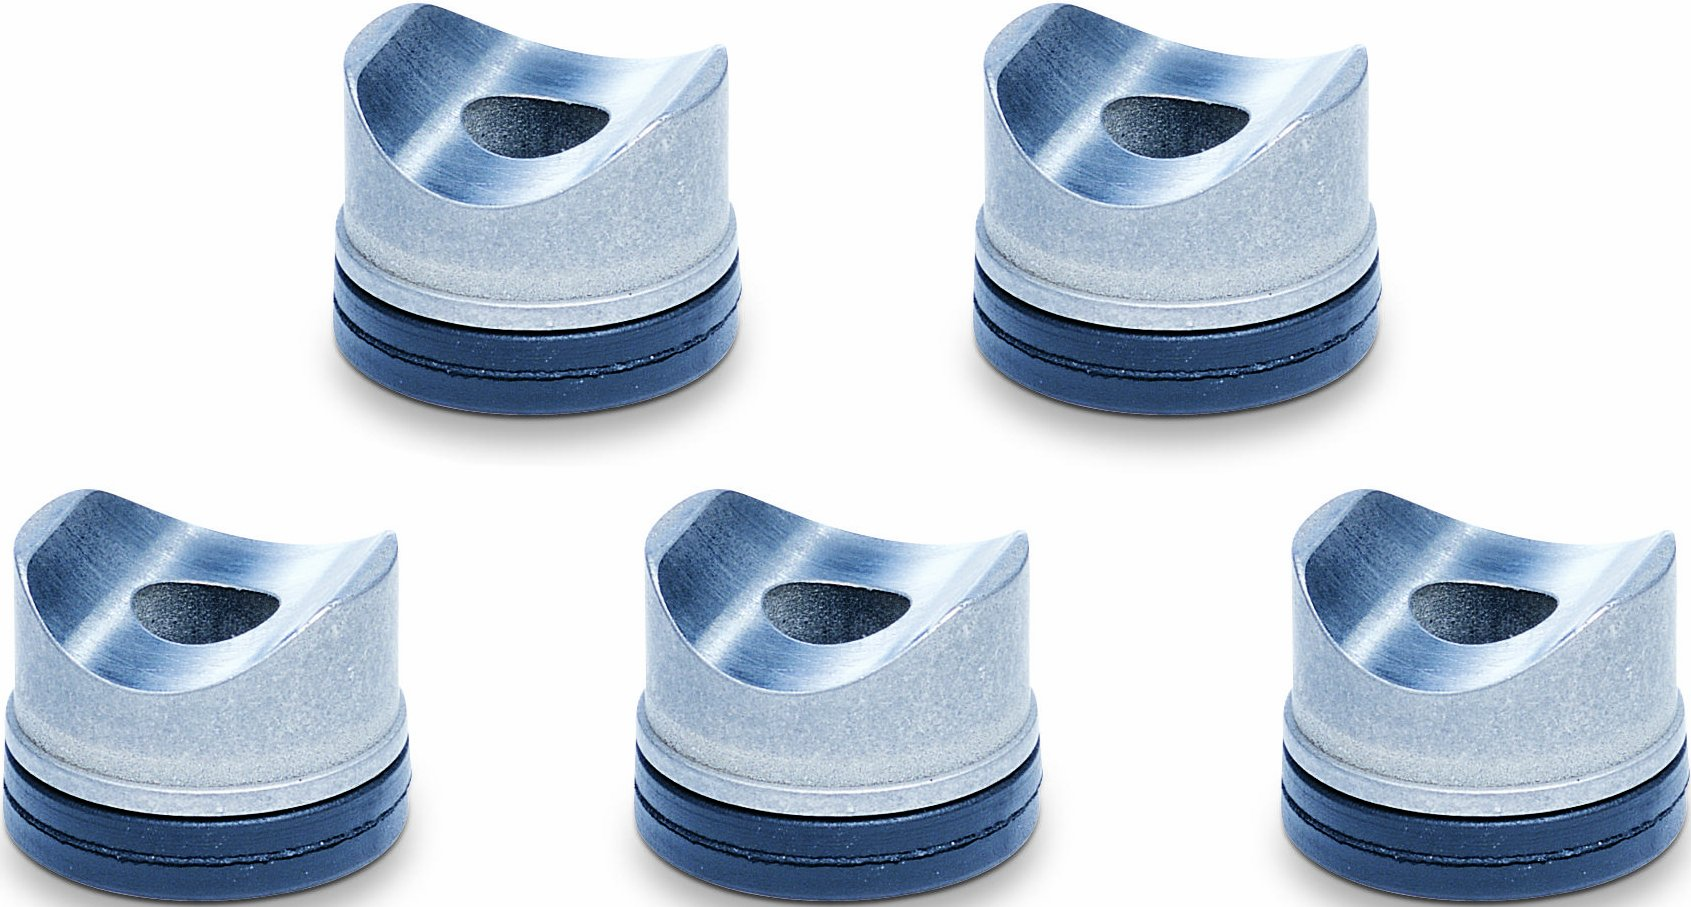 Graco 243281 RAC 5 One Seals Tip Gaskets for Airless Paint Spray Guns, 5-Pack